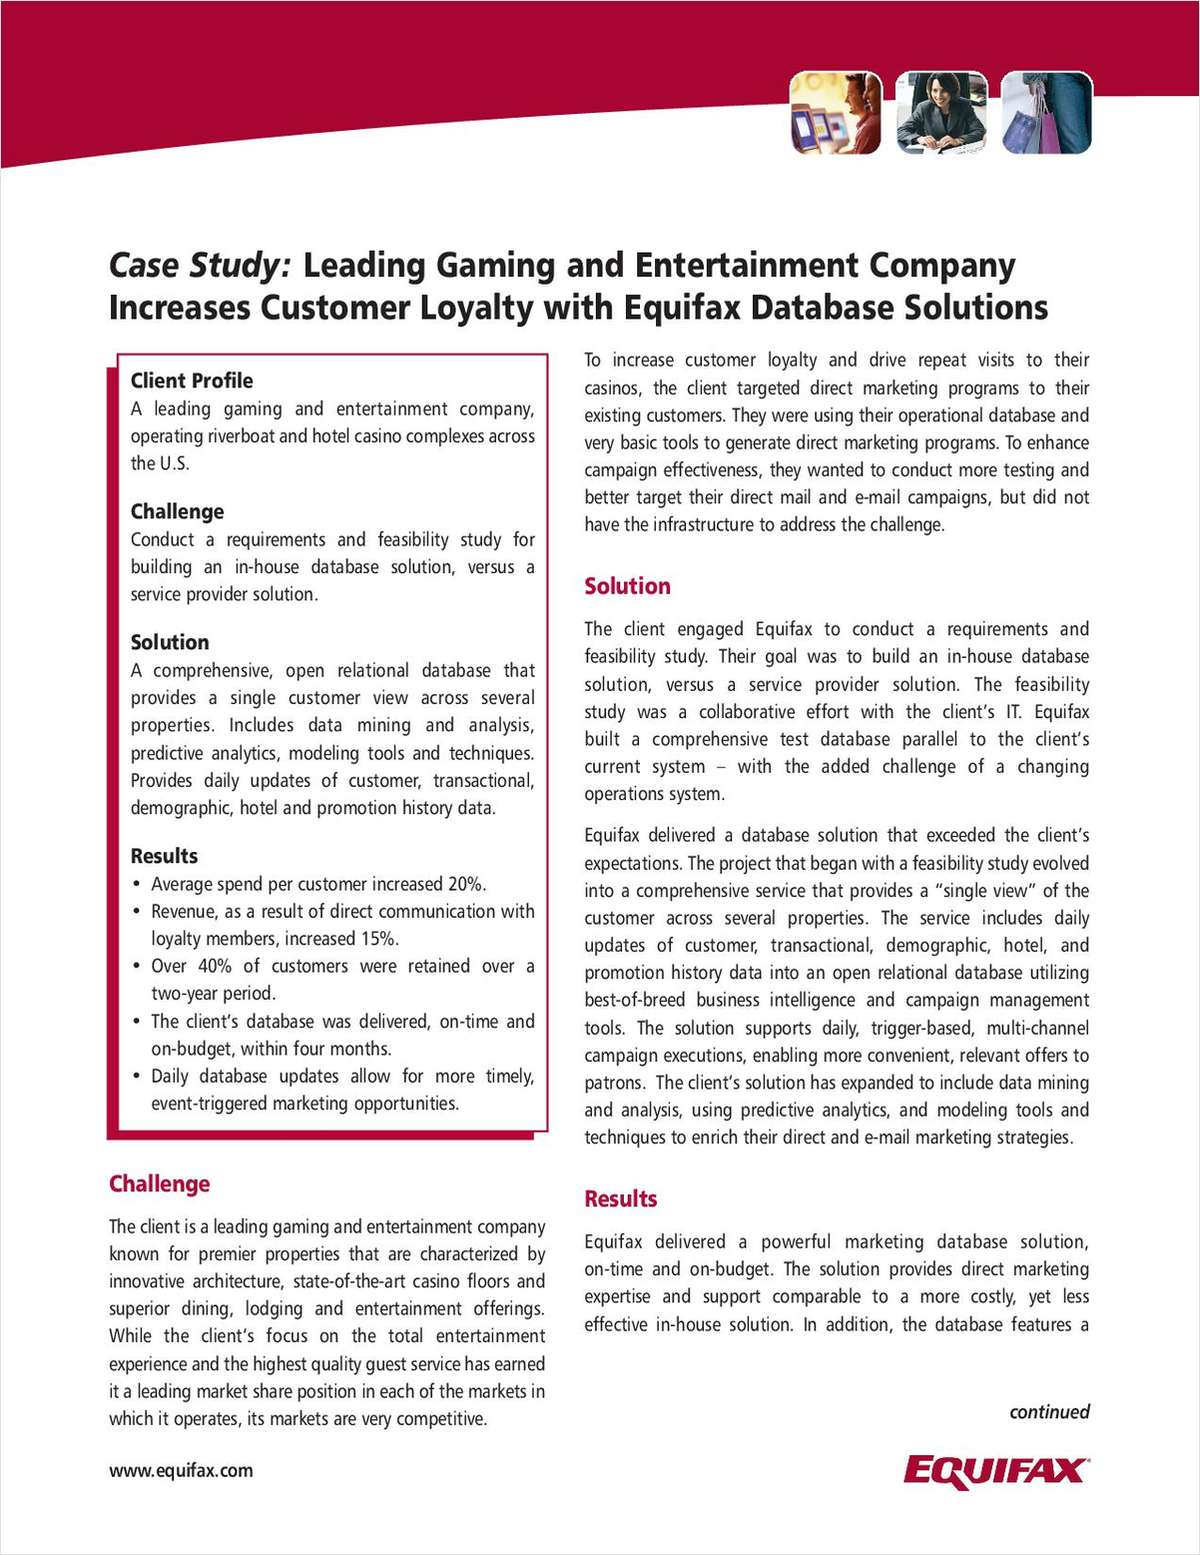 Leading Gaming & Entertainment Company Increases Loyalty with Equifax Database Solutions